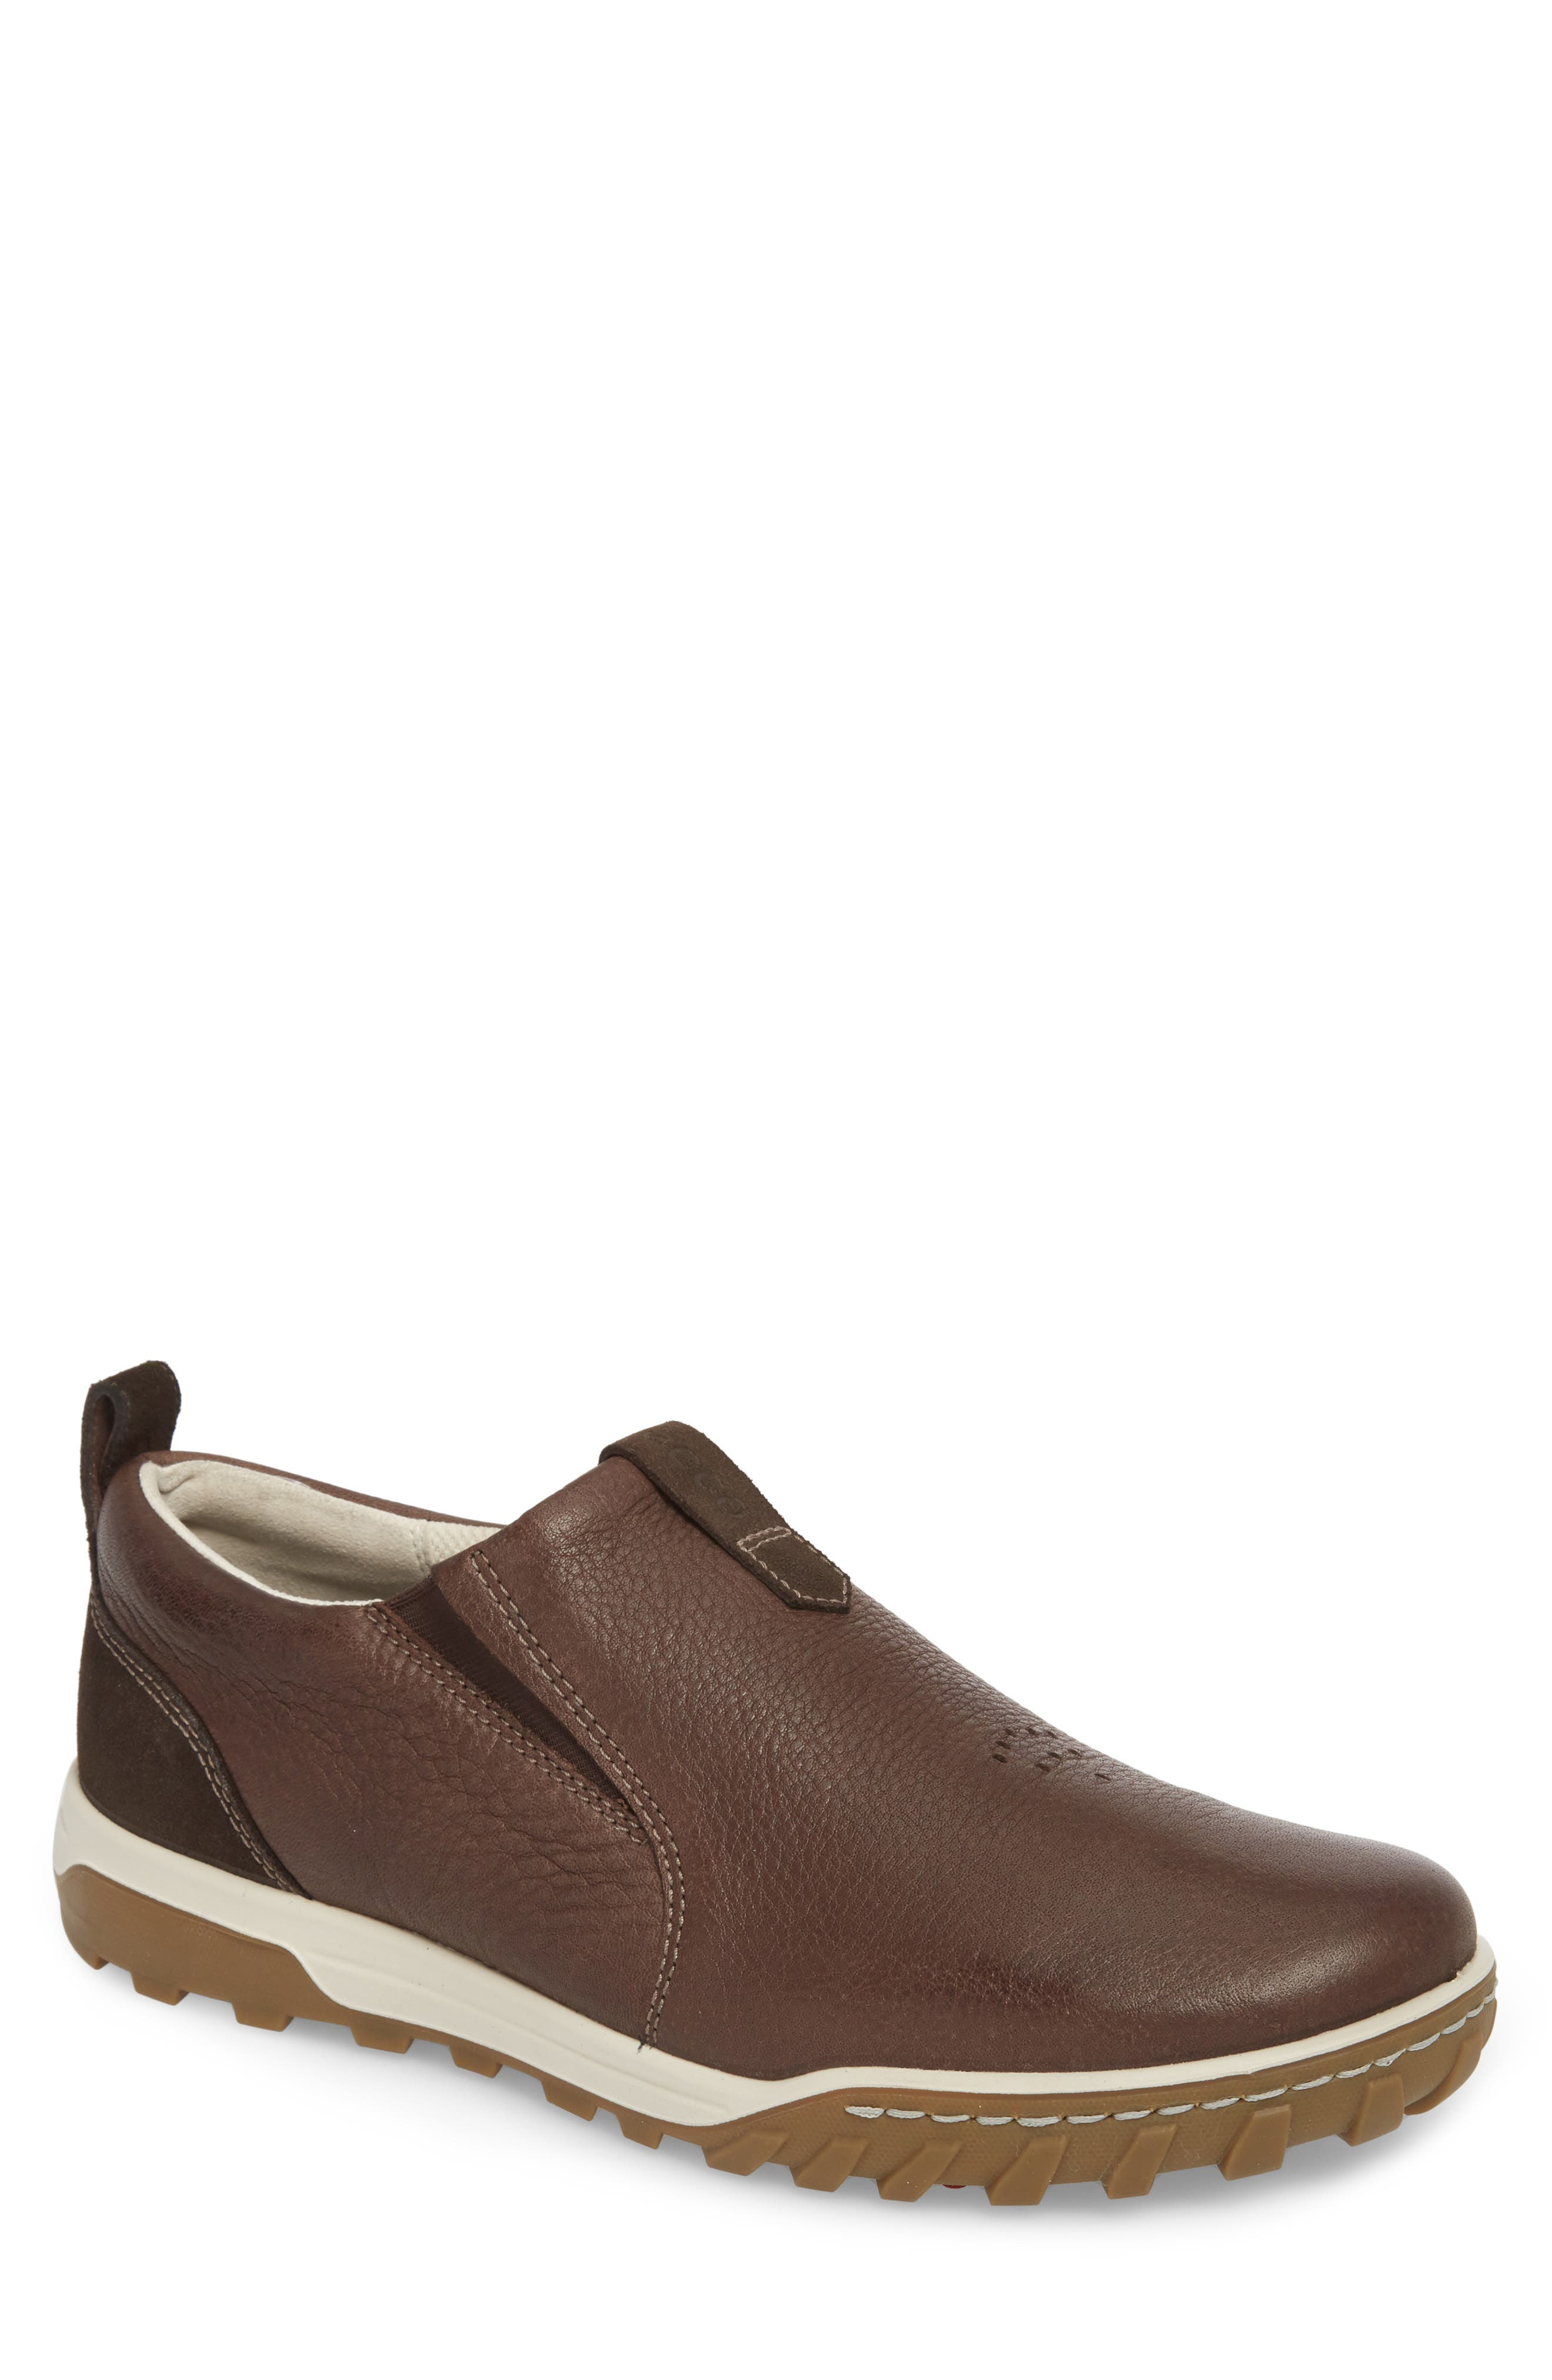 Urban Lifestyle Slip-On Sneaker,                             Main thumbnail 1, color,                             Coffee Leather